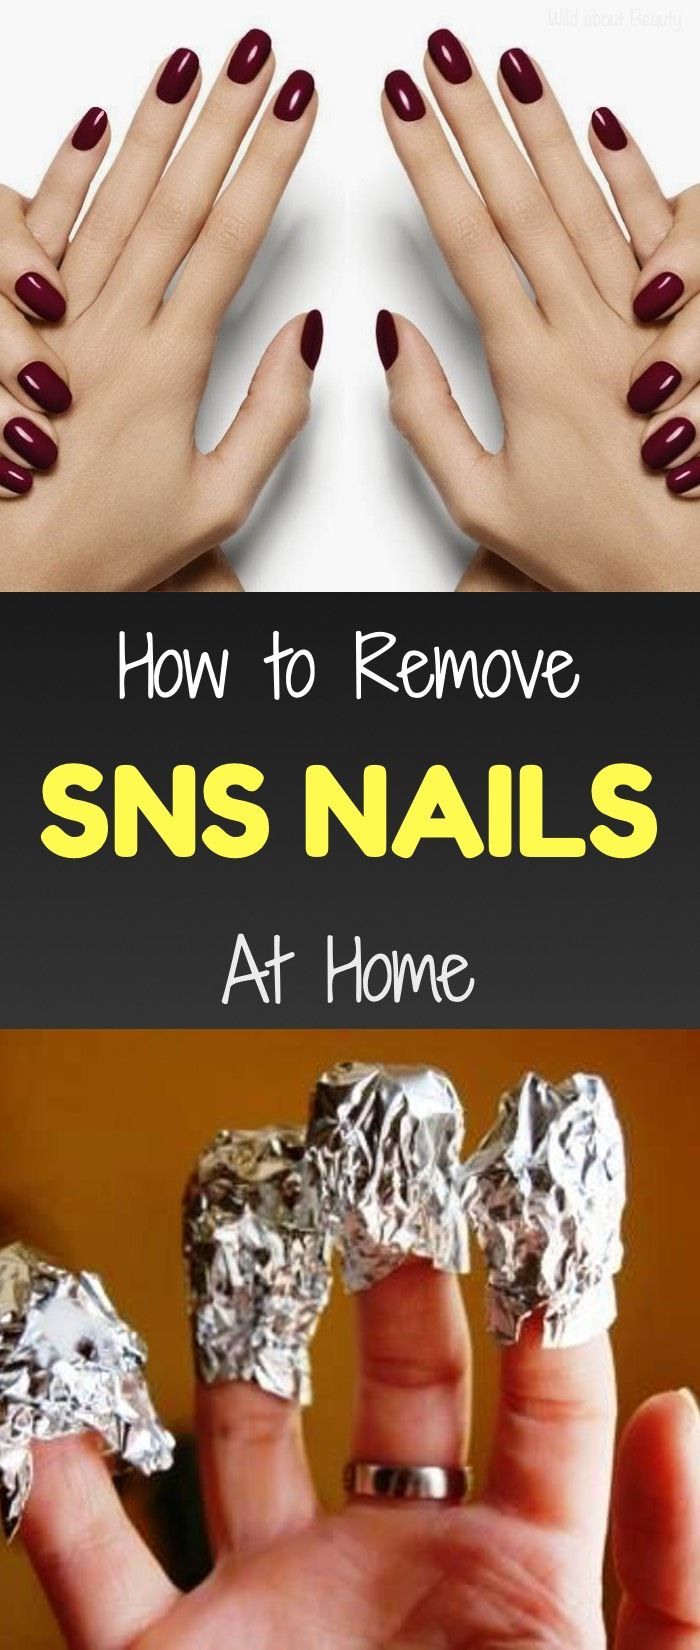 How To Remove Sns Nails At Home Sns Nails Remove Sns Nails Remove Acrylic Nails